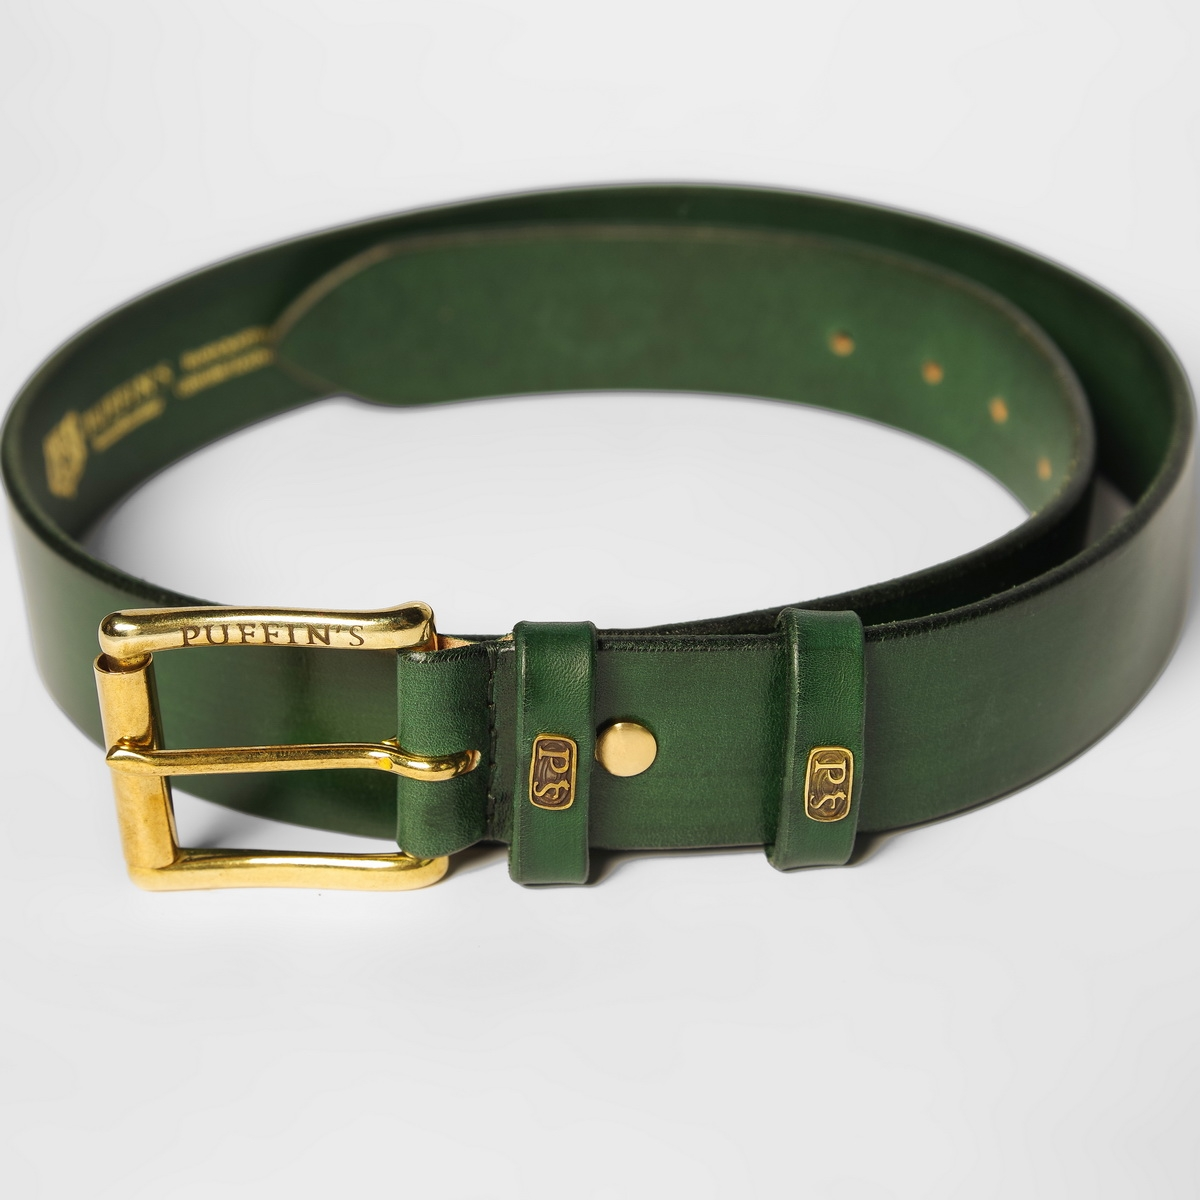 Wide belt for jeans with a 40mm brass buckle grassy green